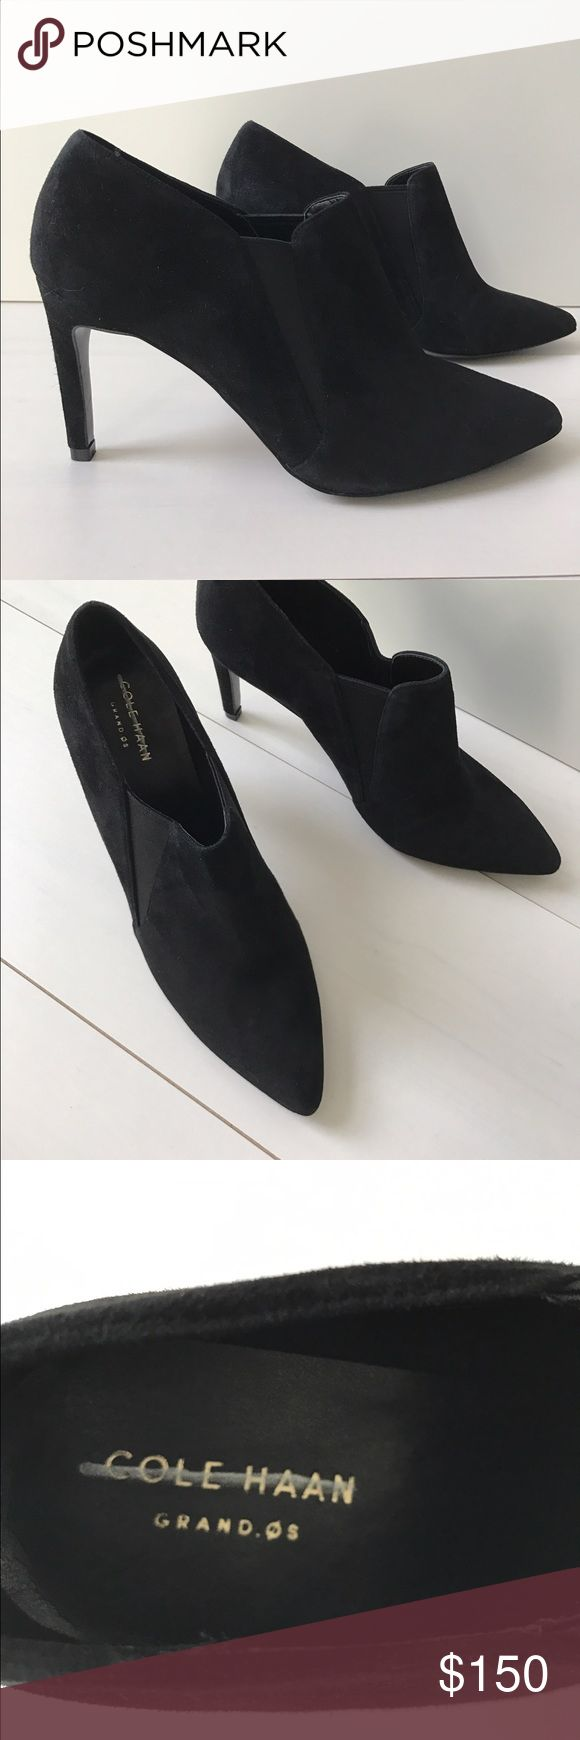 COLE HAAN Black suede high heel ankle boot Sexy, sophisticated and elegant and also good on your feet - Grand OS Cole Haan shoes use technical knowledge from athletic shoes and incorporate into a dress shoe. Never worn, excellent condition. Upper is suede including heel with side elastic for ease of slip on. Sz 8. Marking on inner label Cole Haan Shoes Heels